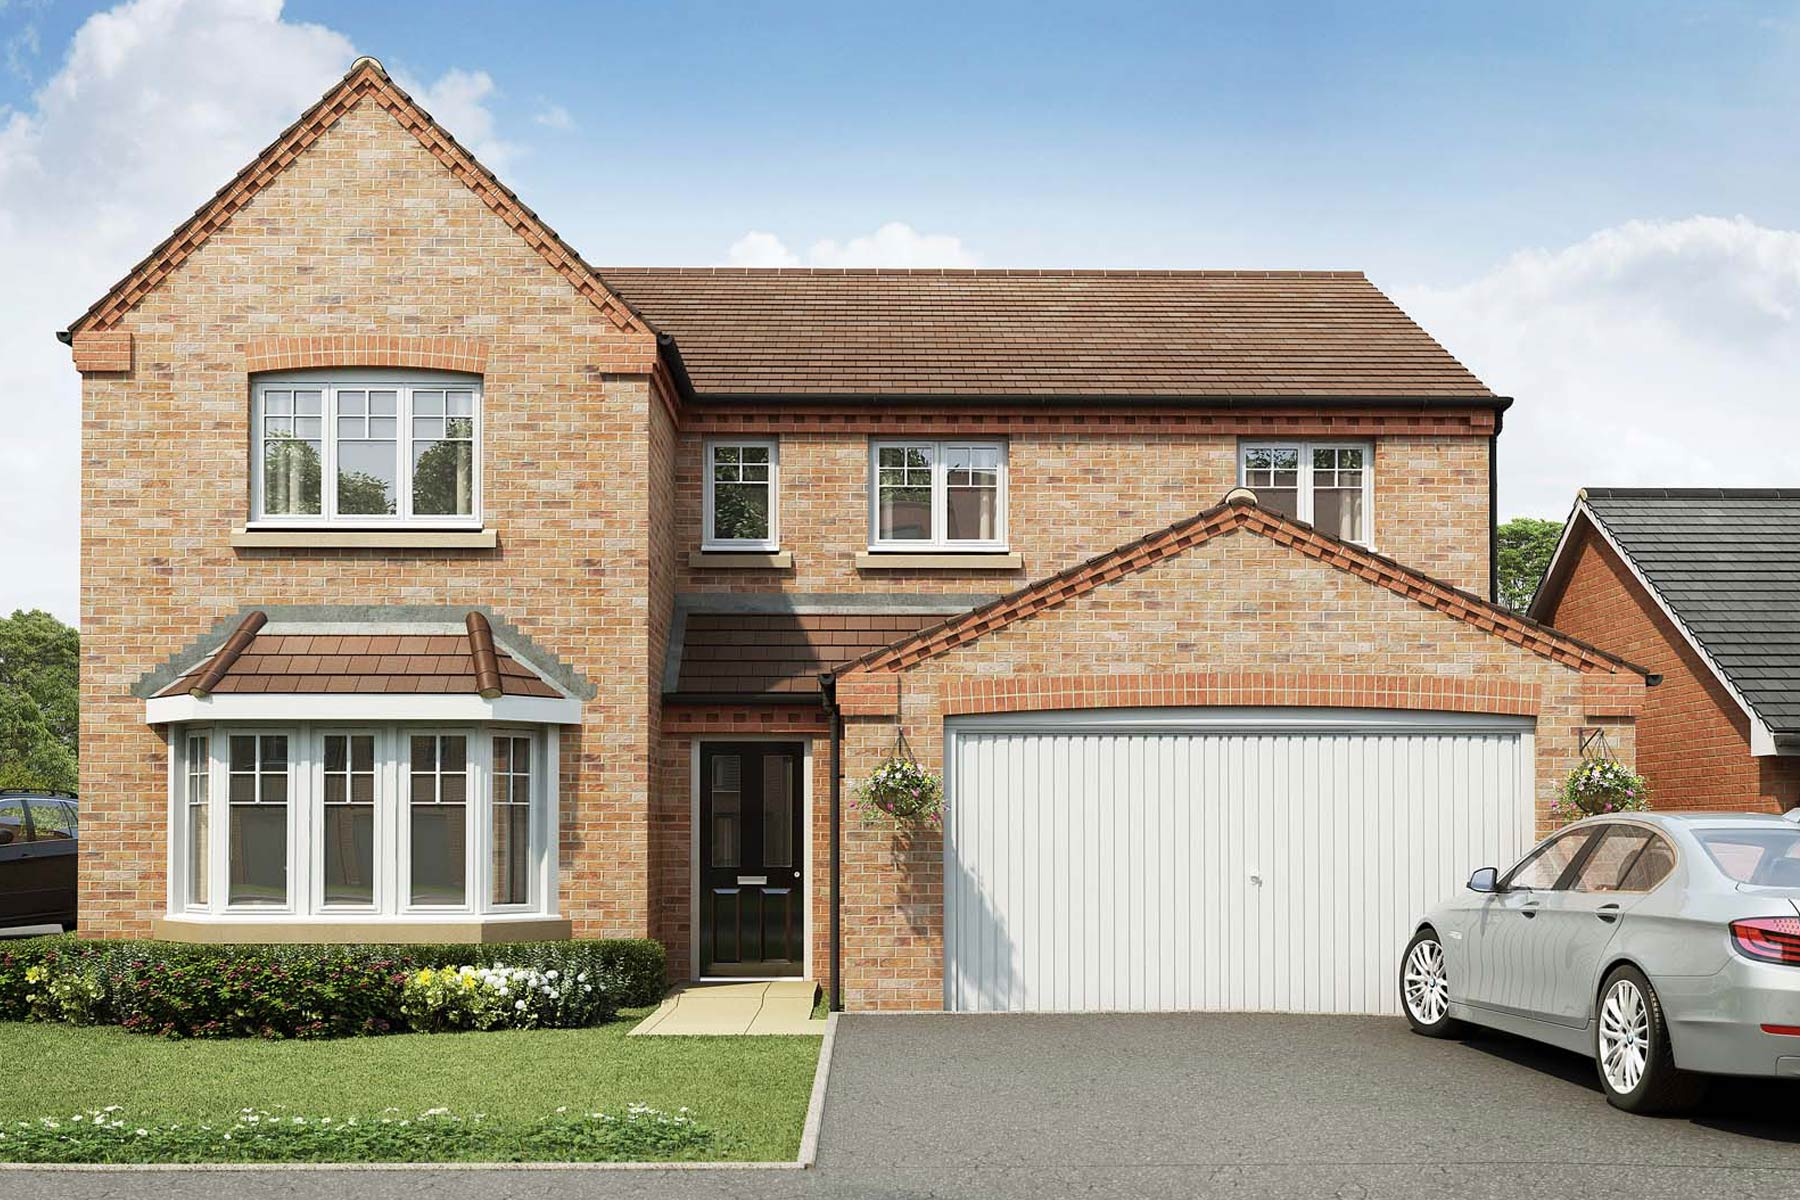 CGI-The-Hartlebury-P8-Plot-83-Bowbrook-brochure_1800x1200